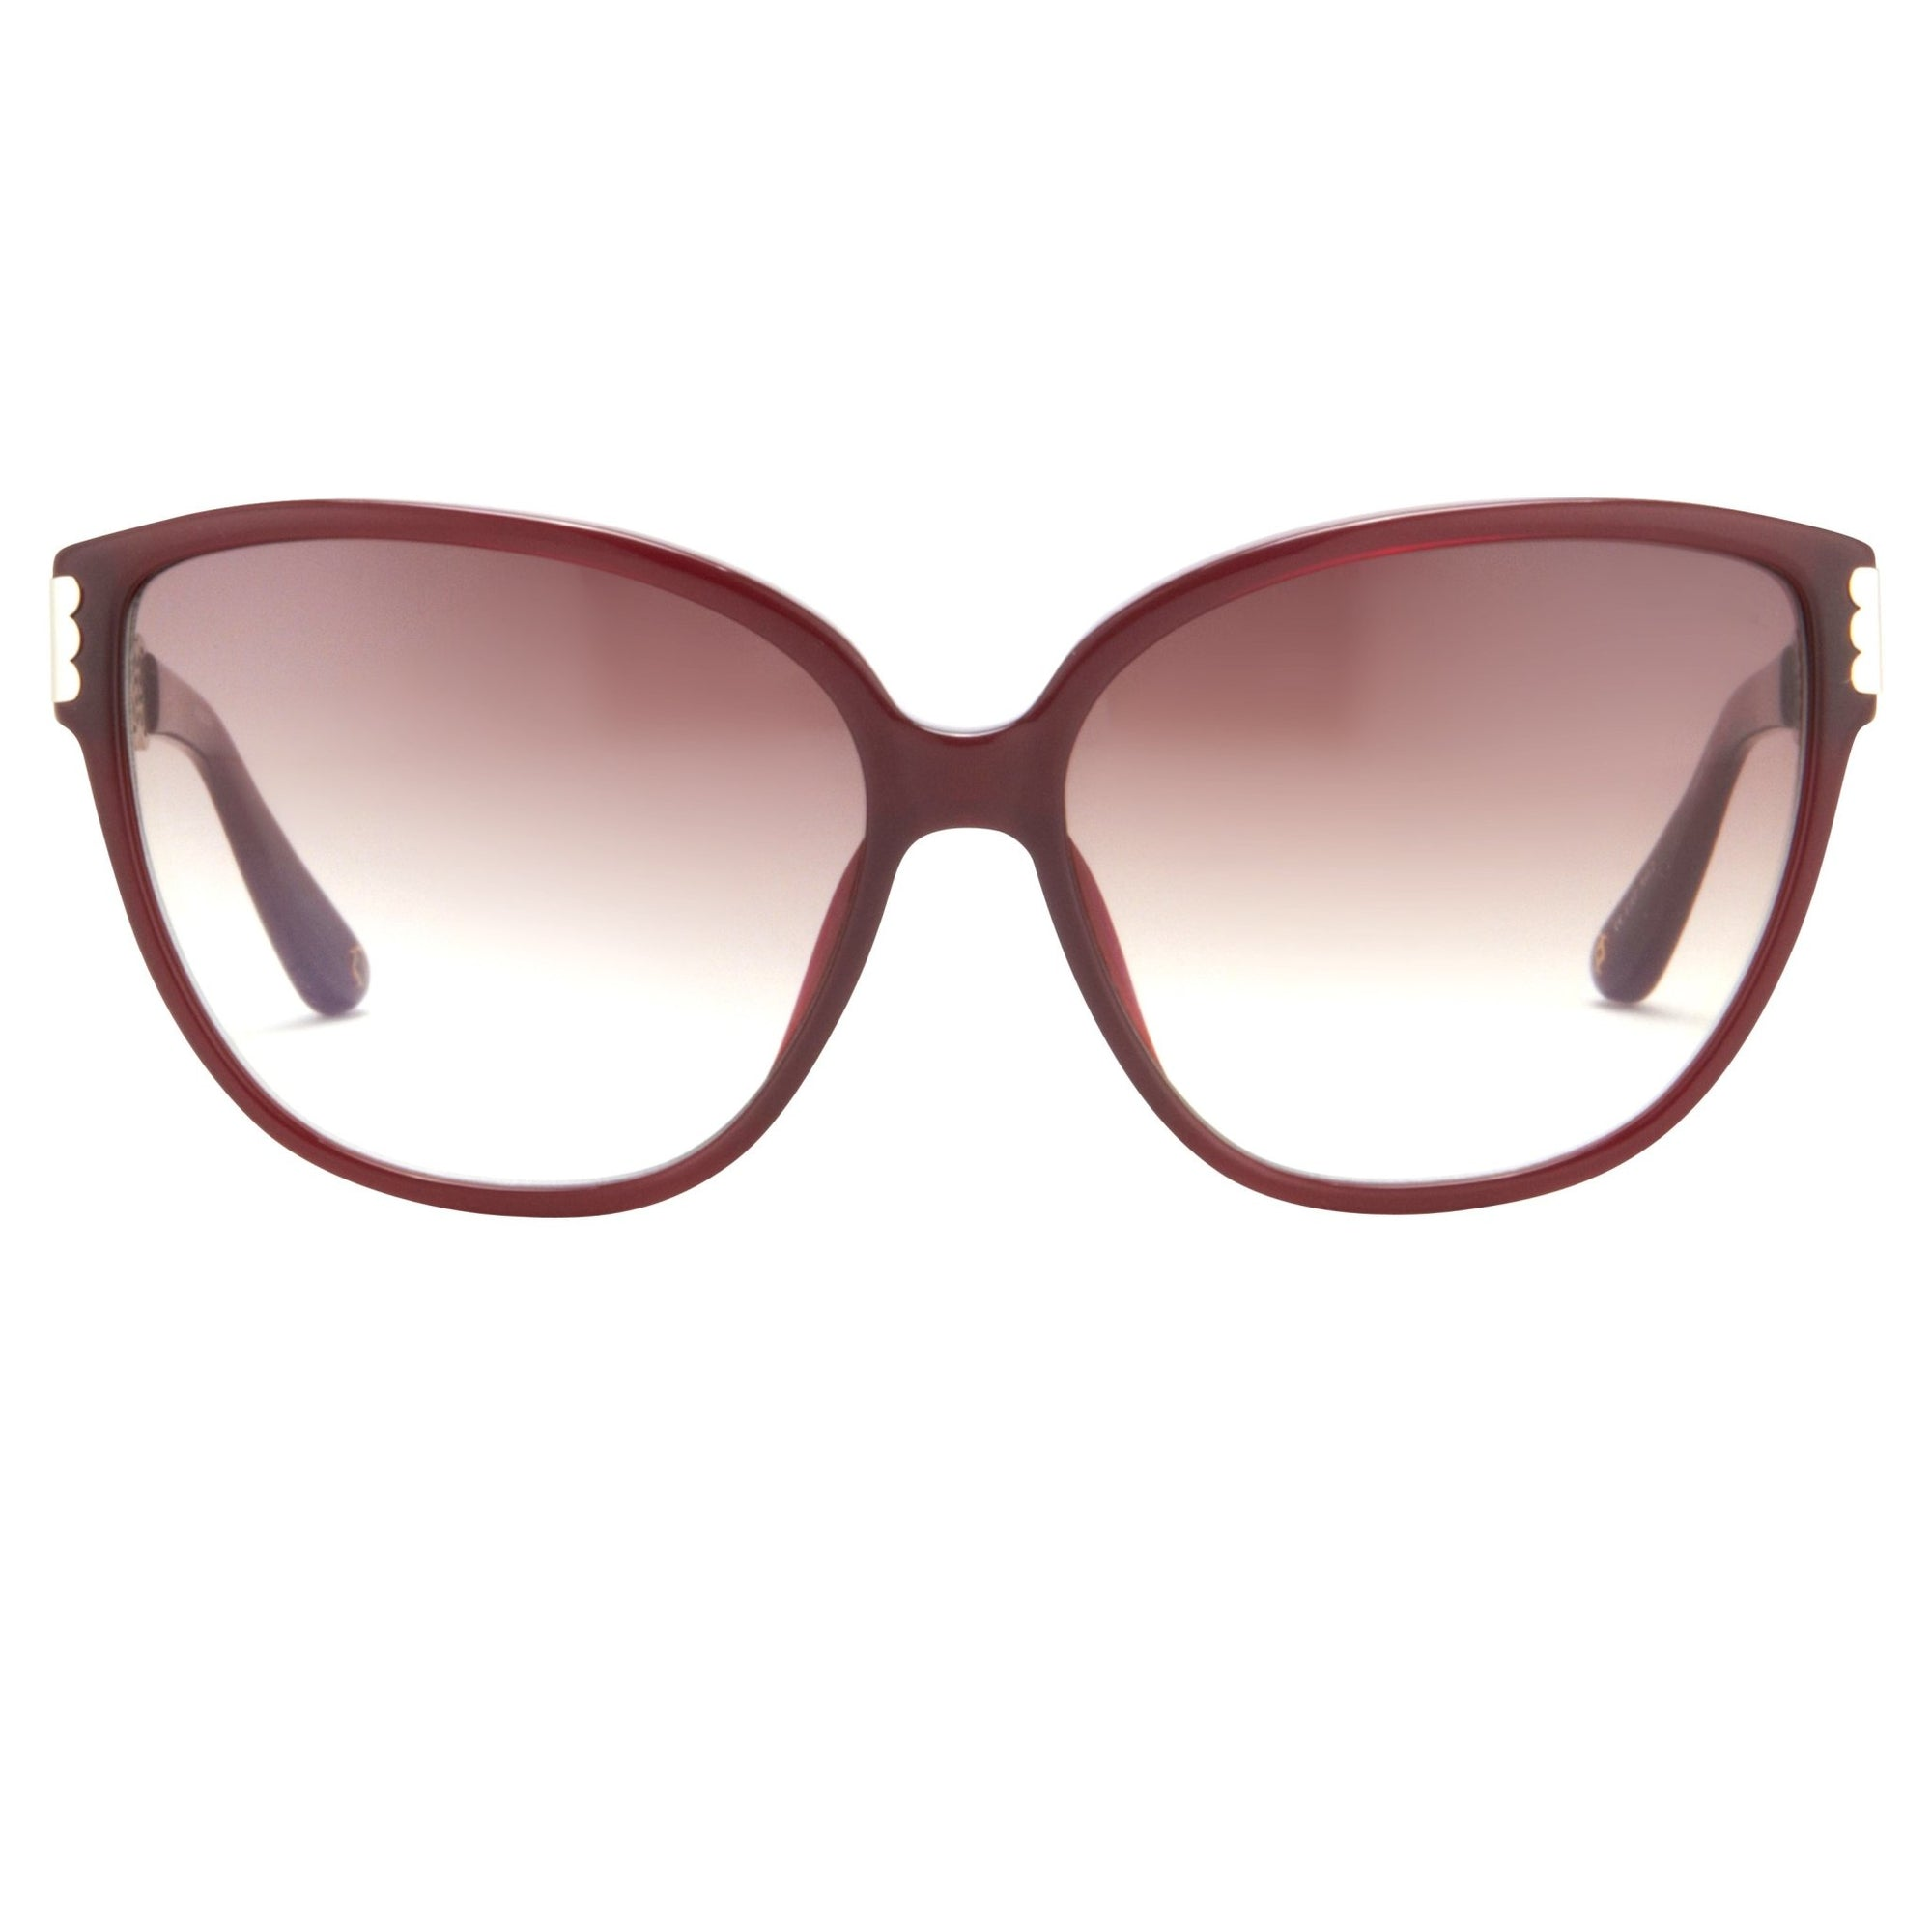 Oscar De La Renta Women Sunglasses Oval Deep Red with Brown Graduated Lenses - ODLR52C4SUN - Watches & Crystals